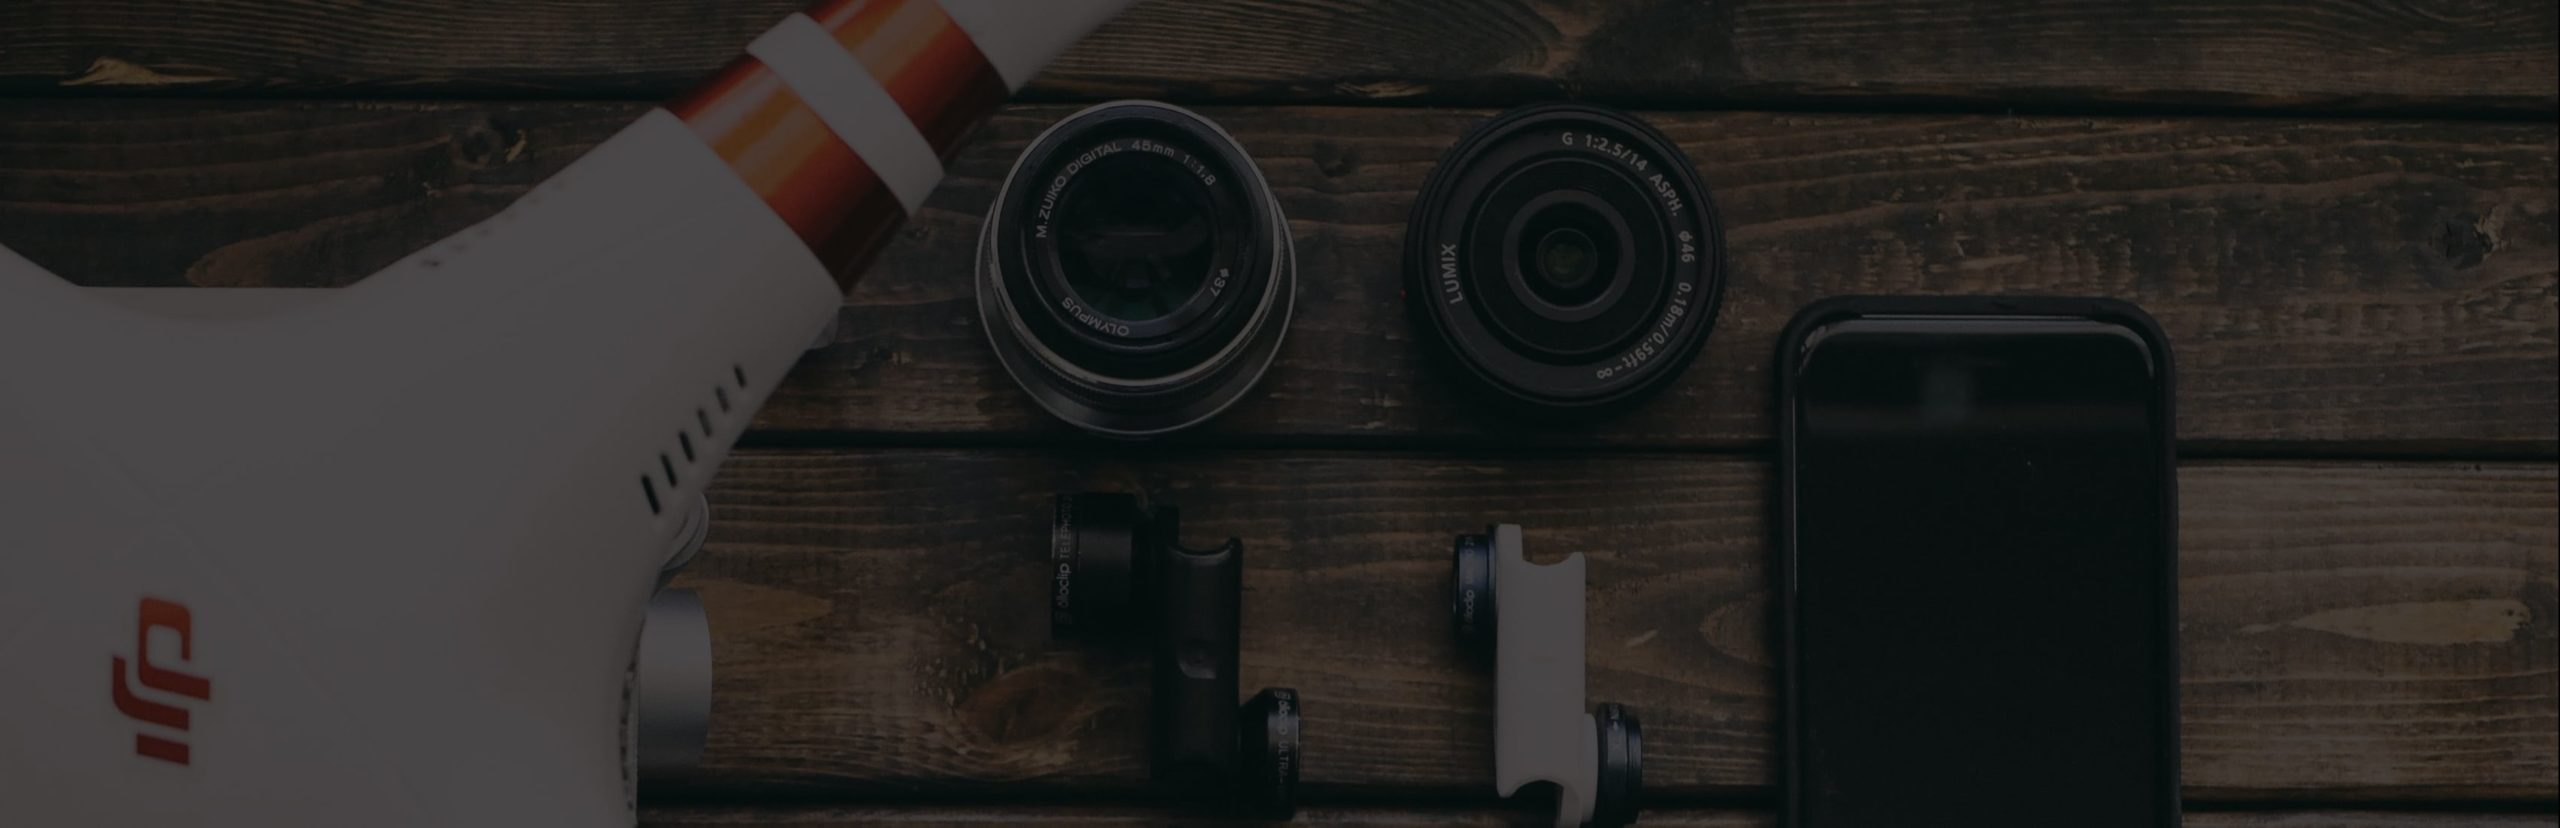 Drone and lenses